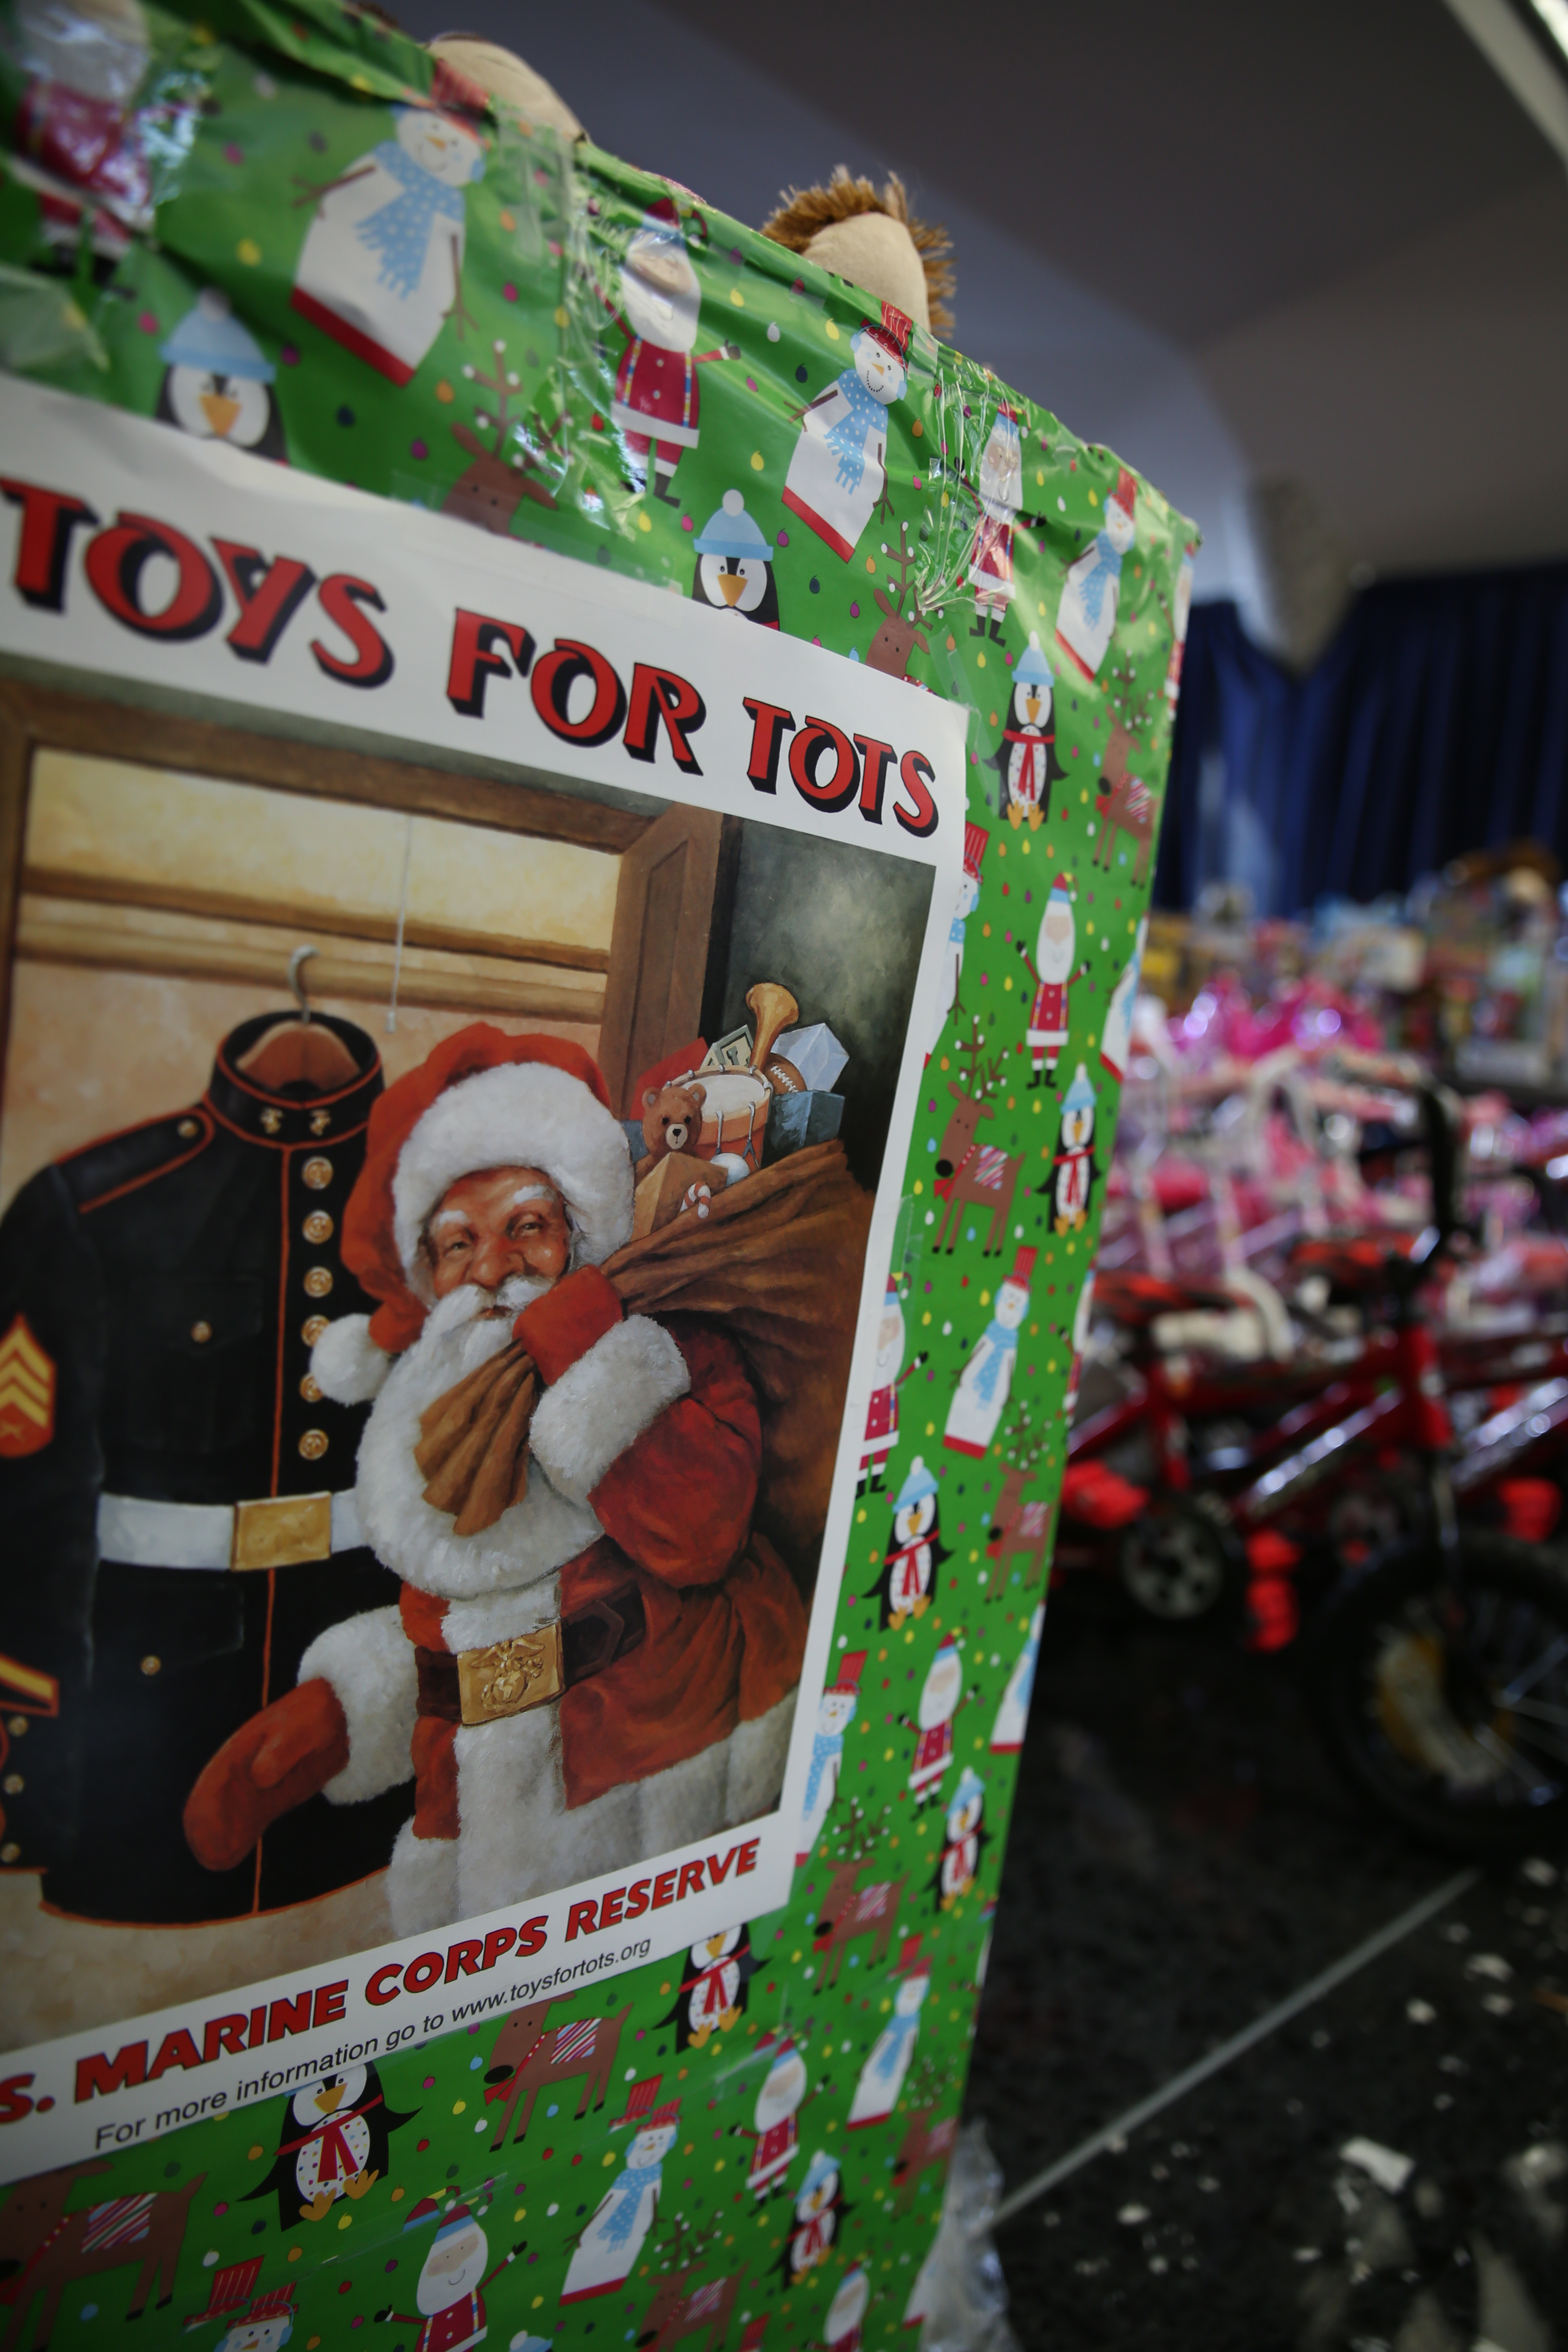 Toys For Tots Washington State : President first lady volunteer at toys for tots event